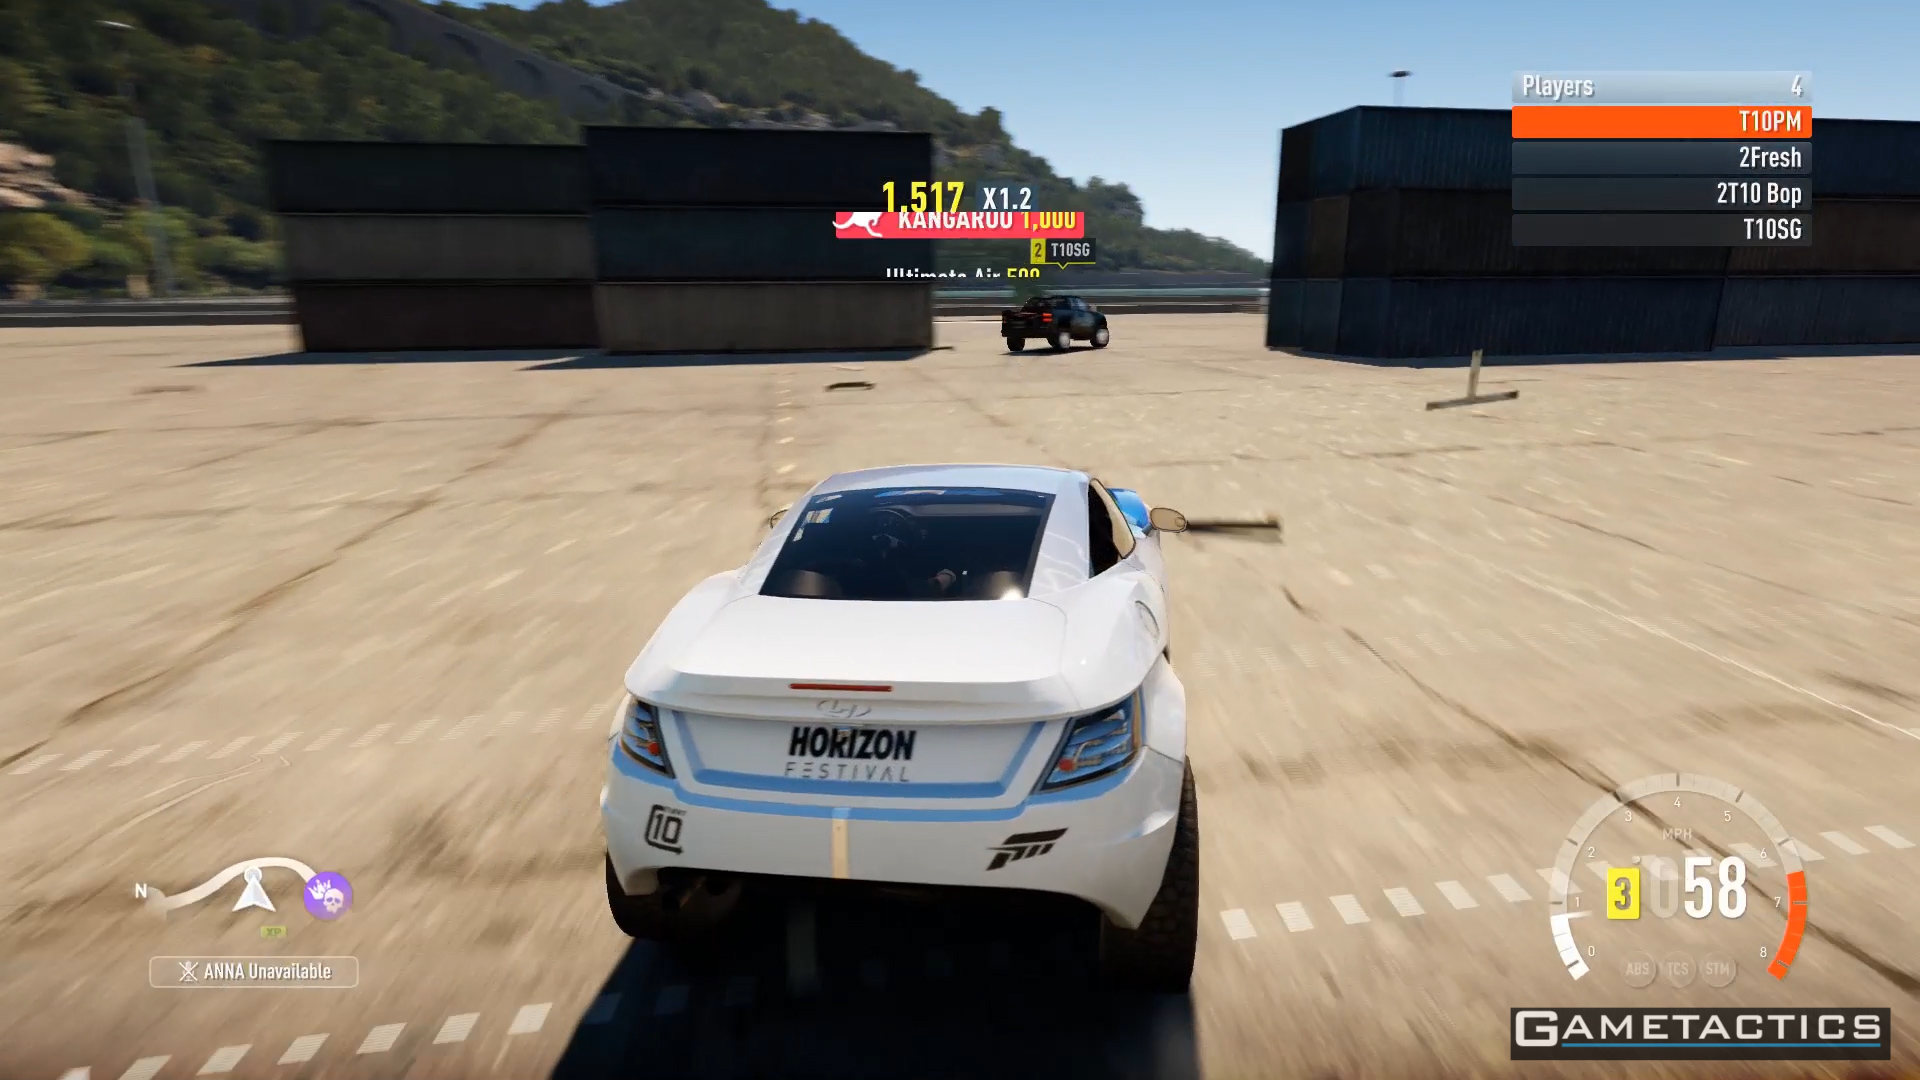 Unless You Absolutely Abhor Racing Games Theres No Reason To Miss This One Keywords Forza Horizon 2